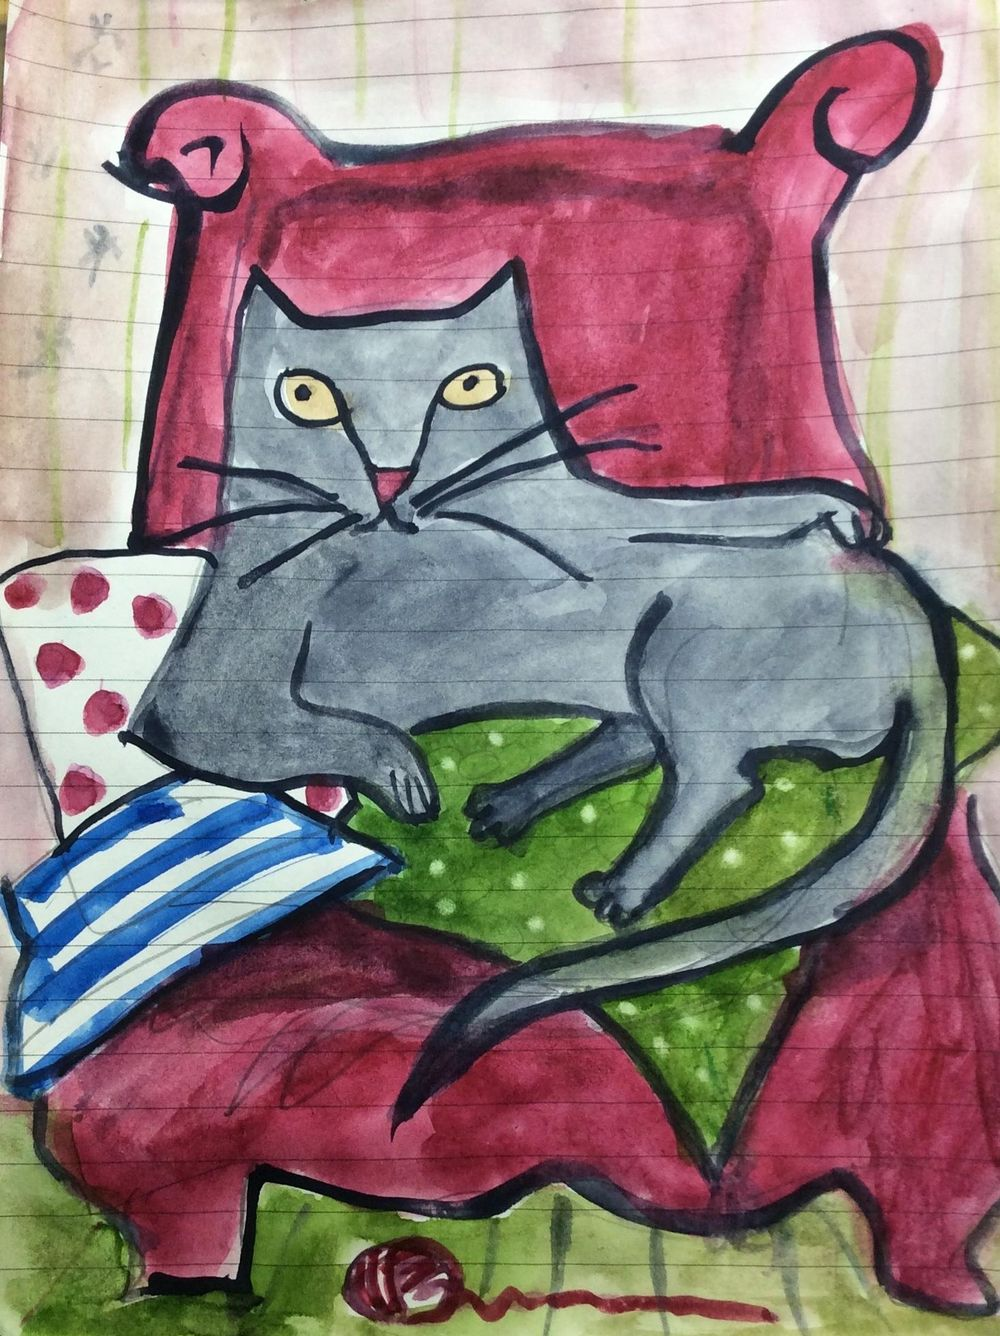 Drawing Arthur, my cat - image 2 - student project